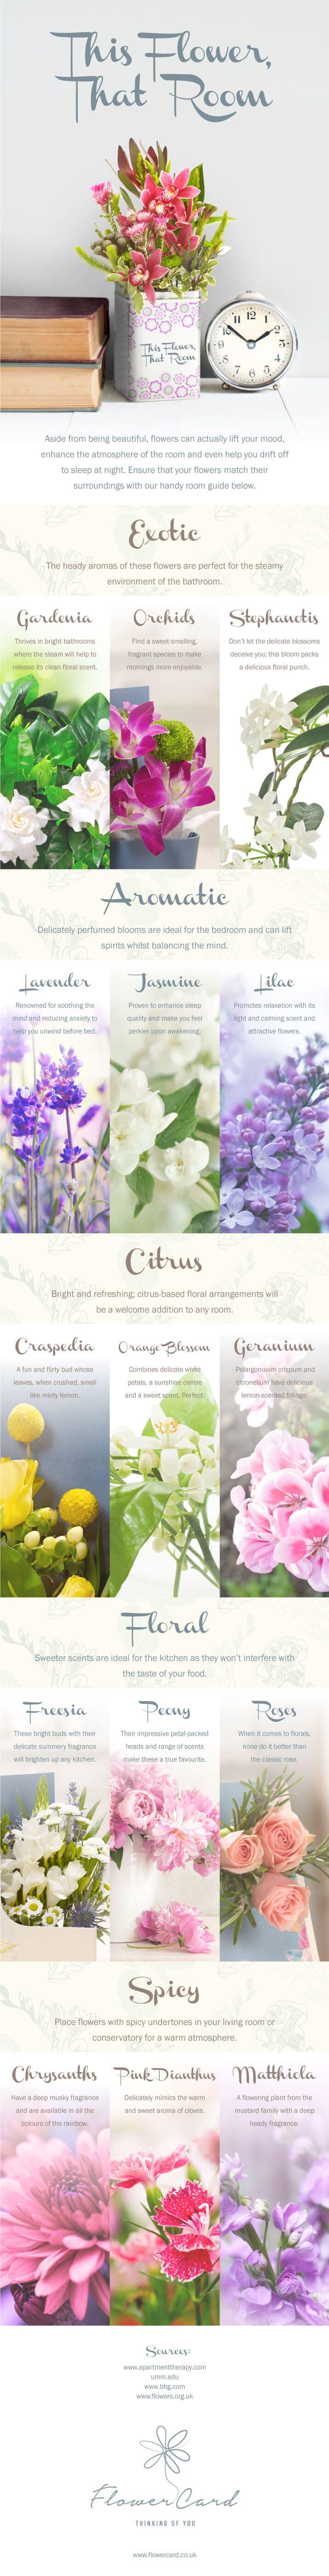 How To Choose The Perfect Flowers For Each Room In Your Home [Infographic]